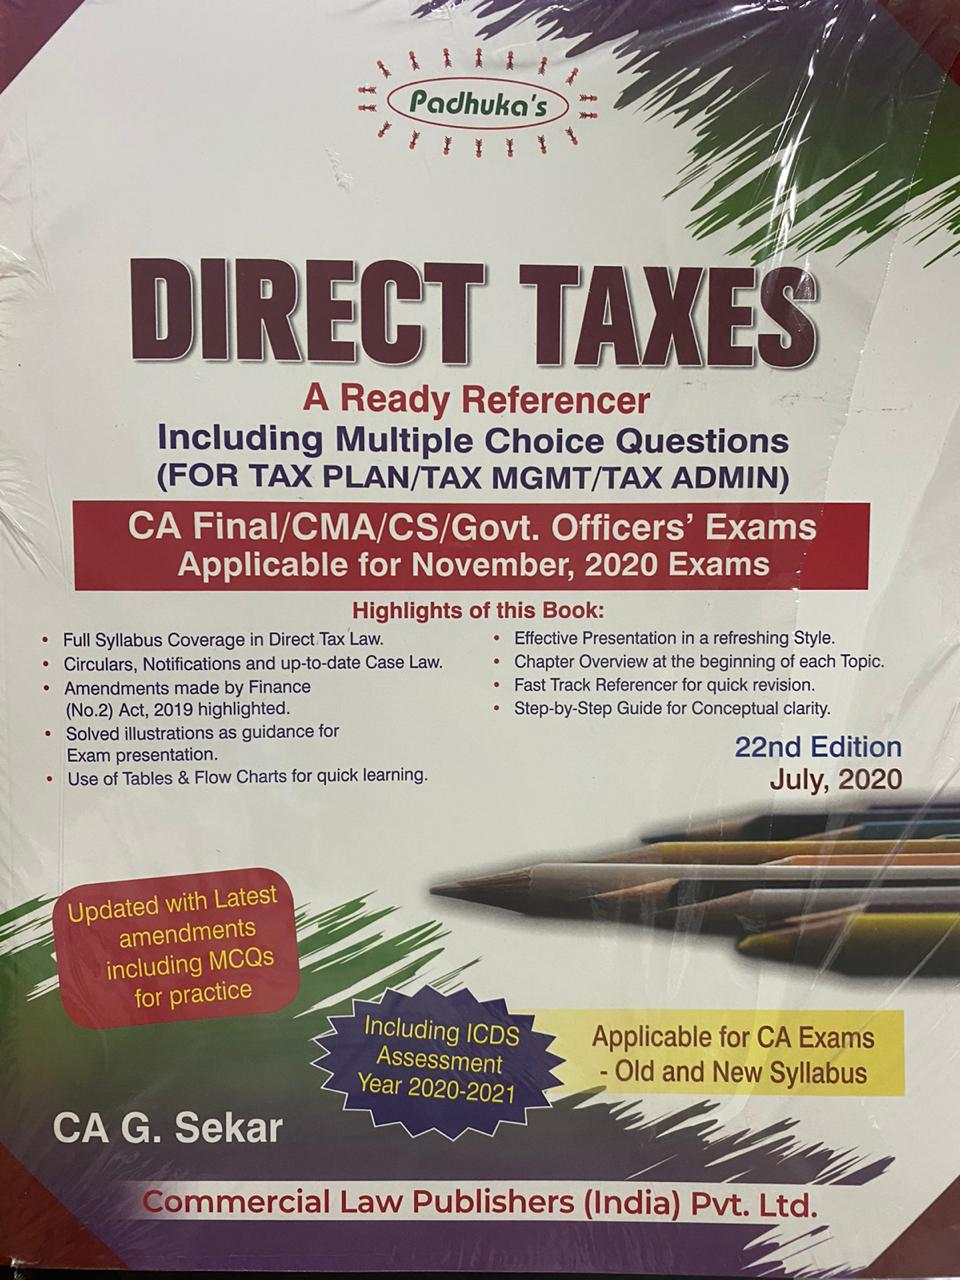 Padhuka Direct Taxes A ready Reference for CA Final (Old & New Syllabus) by CA G